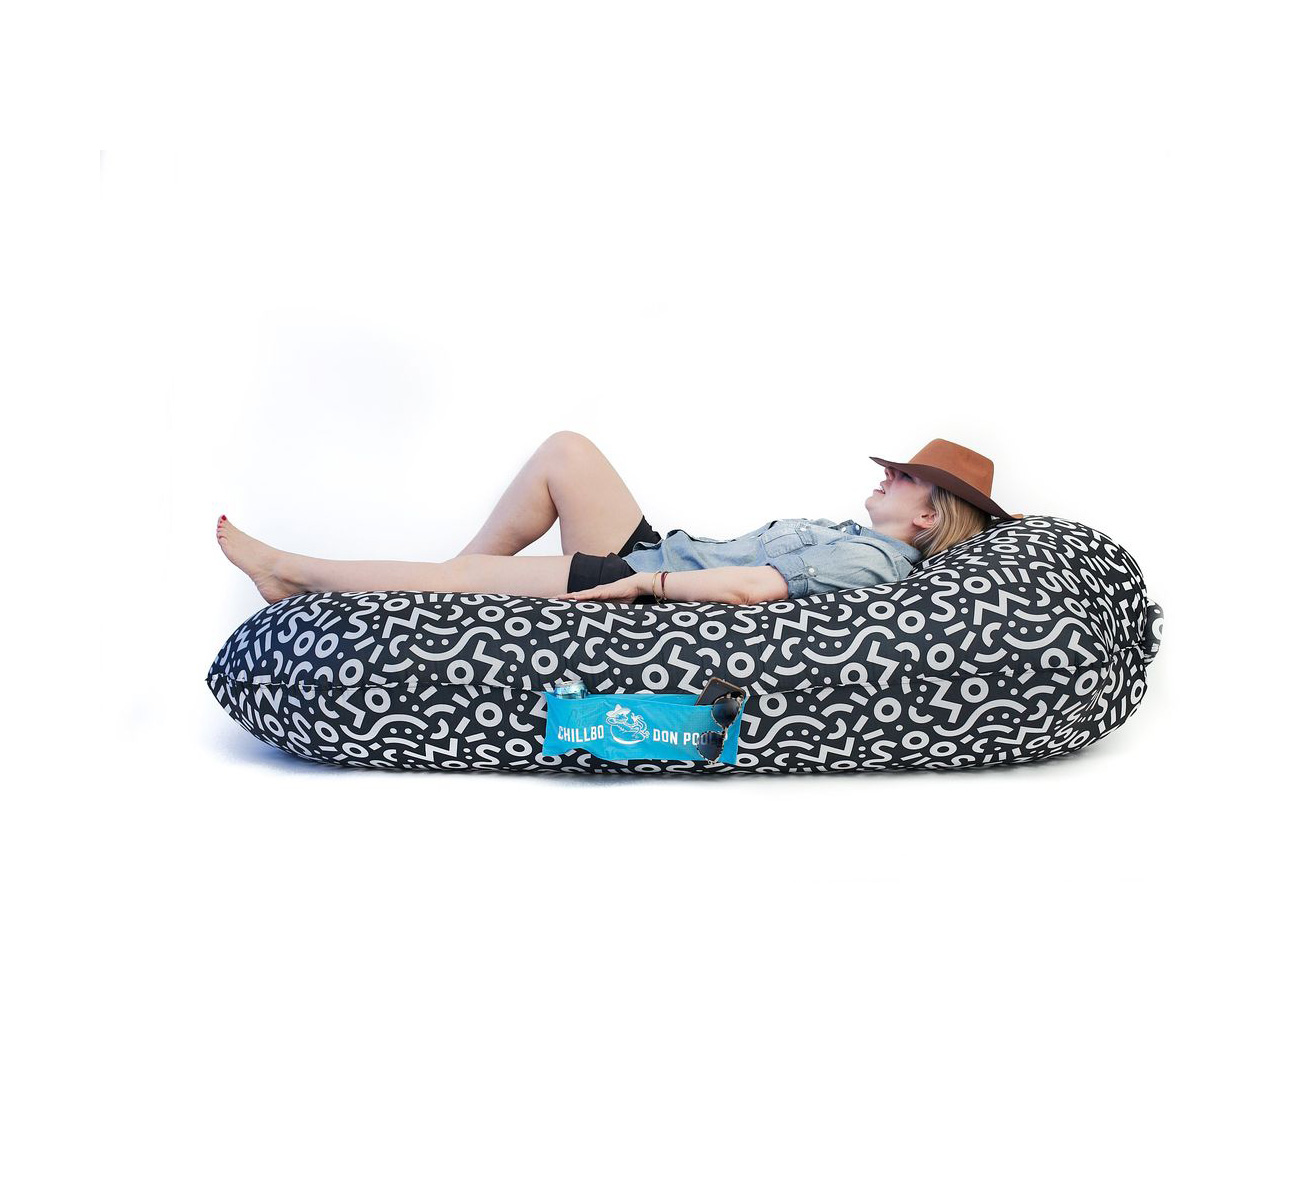 Chillbo Inflatable Lounger (0718HOM)